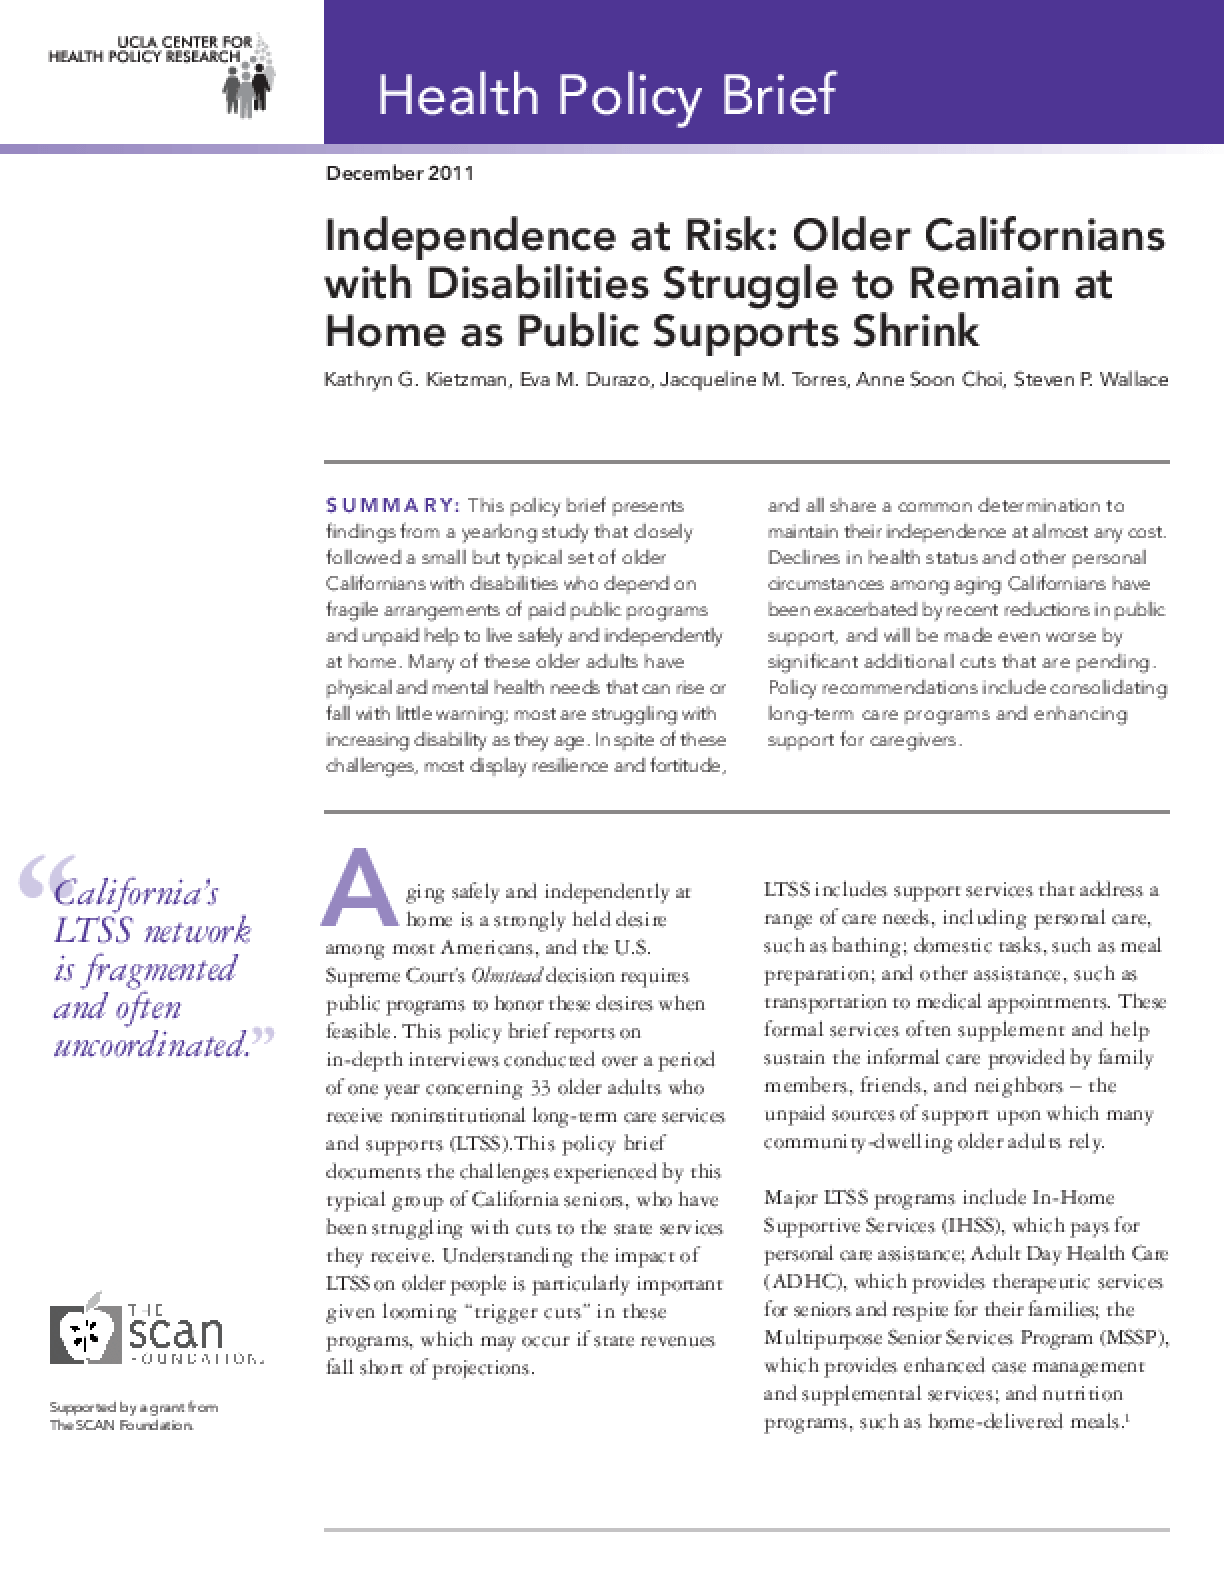 Independence at Risk: Older Californians With Disabilities Struggle to Remain at Home as Public Supports Shrink